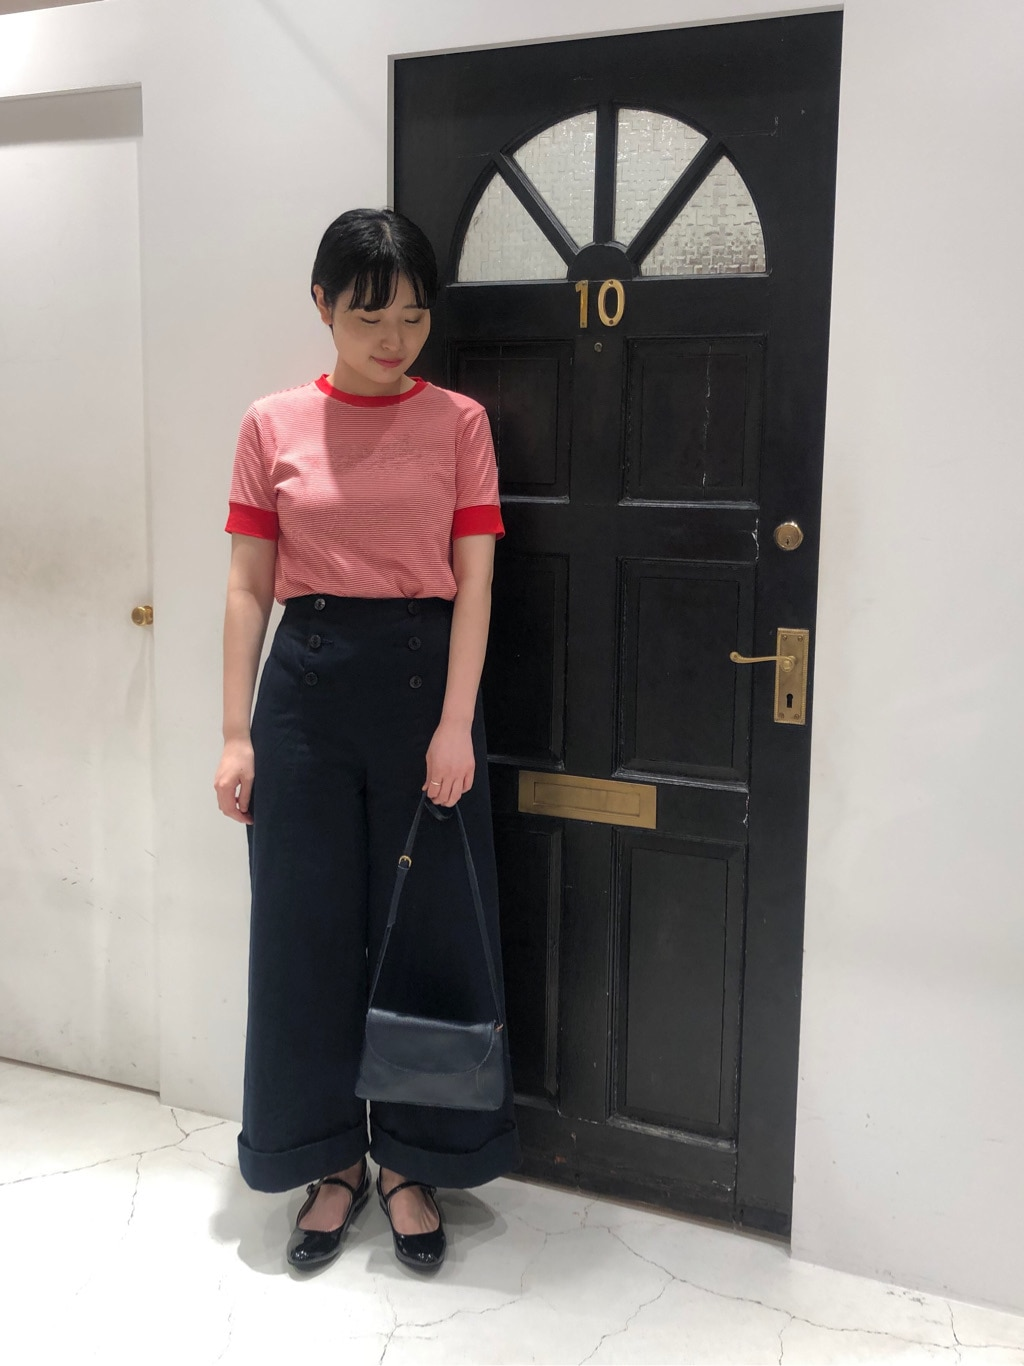 Dot and Stripes CHILD WOMAN ルクアイーレ 身長:165cm 2020.07.29